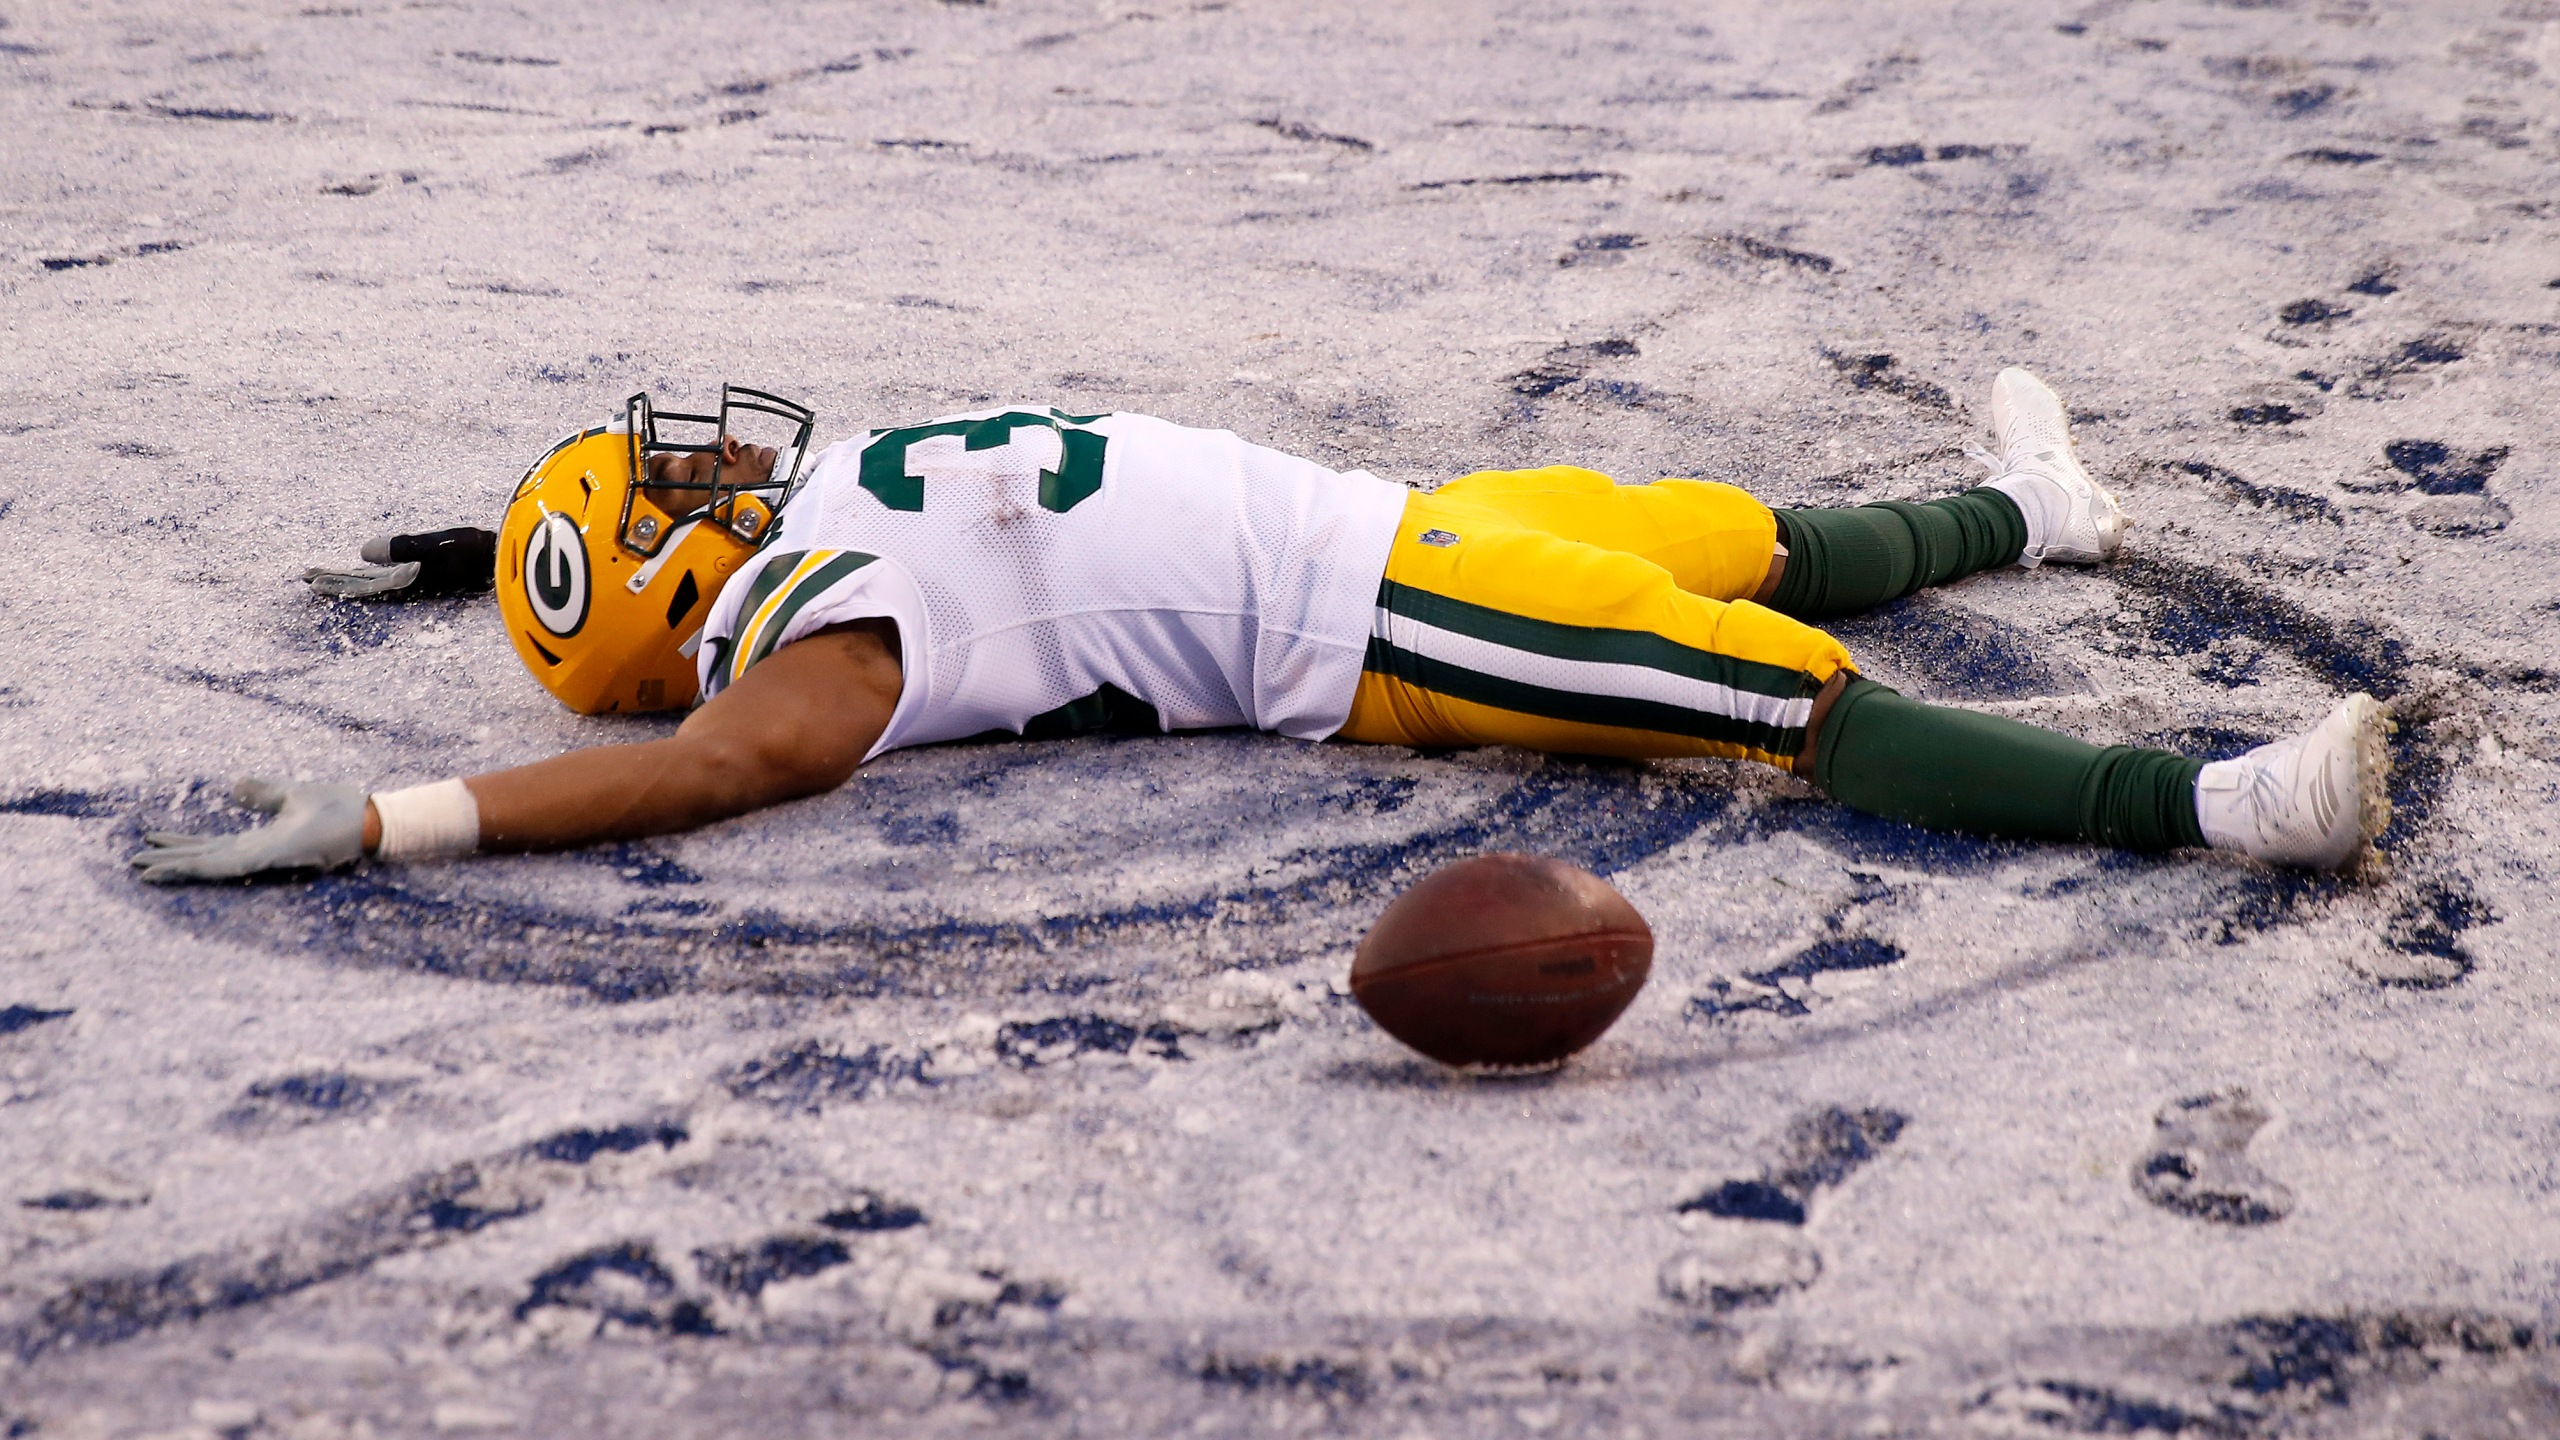 Aaron Jones #33 of the Green Bay Packers makes a snow angel in the end zone in the fourth quarter against the New York Giants at MetLife Stadium on Dec. 1, 2019 in East Rutherford, New Jersey. (Credit: Elsa/Getty Images)